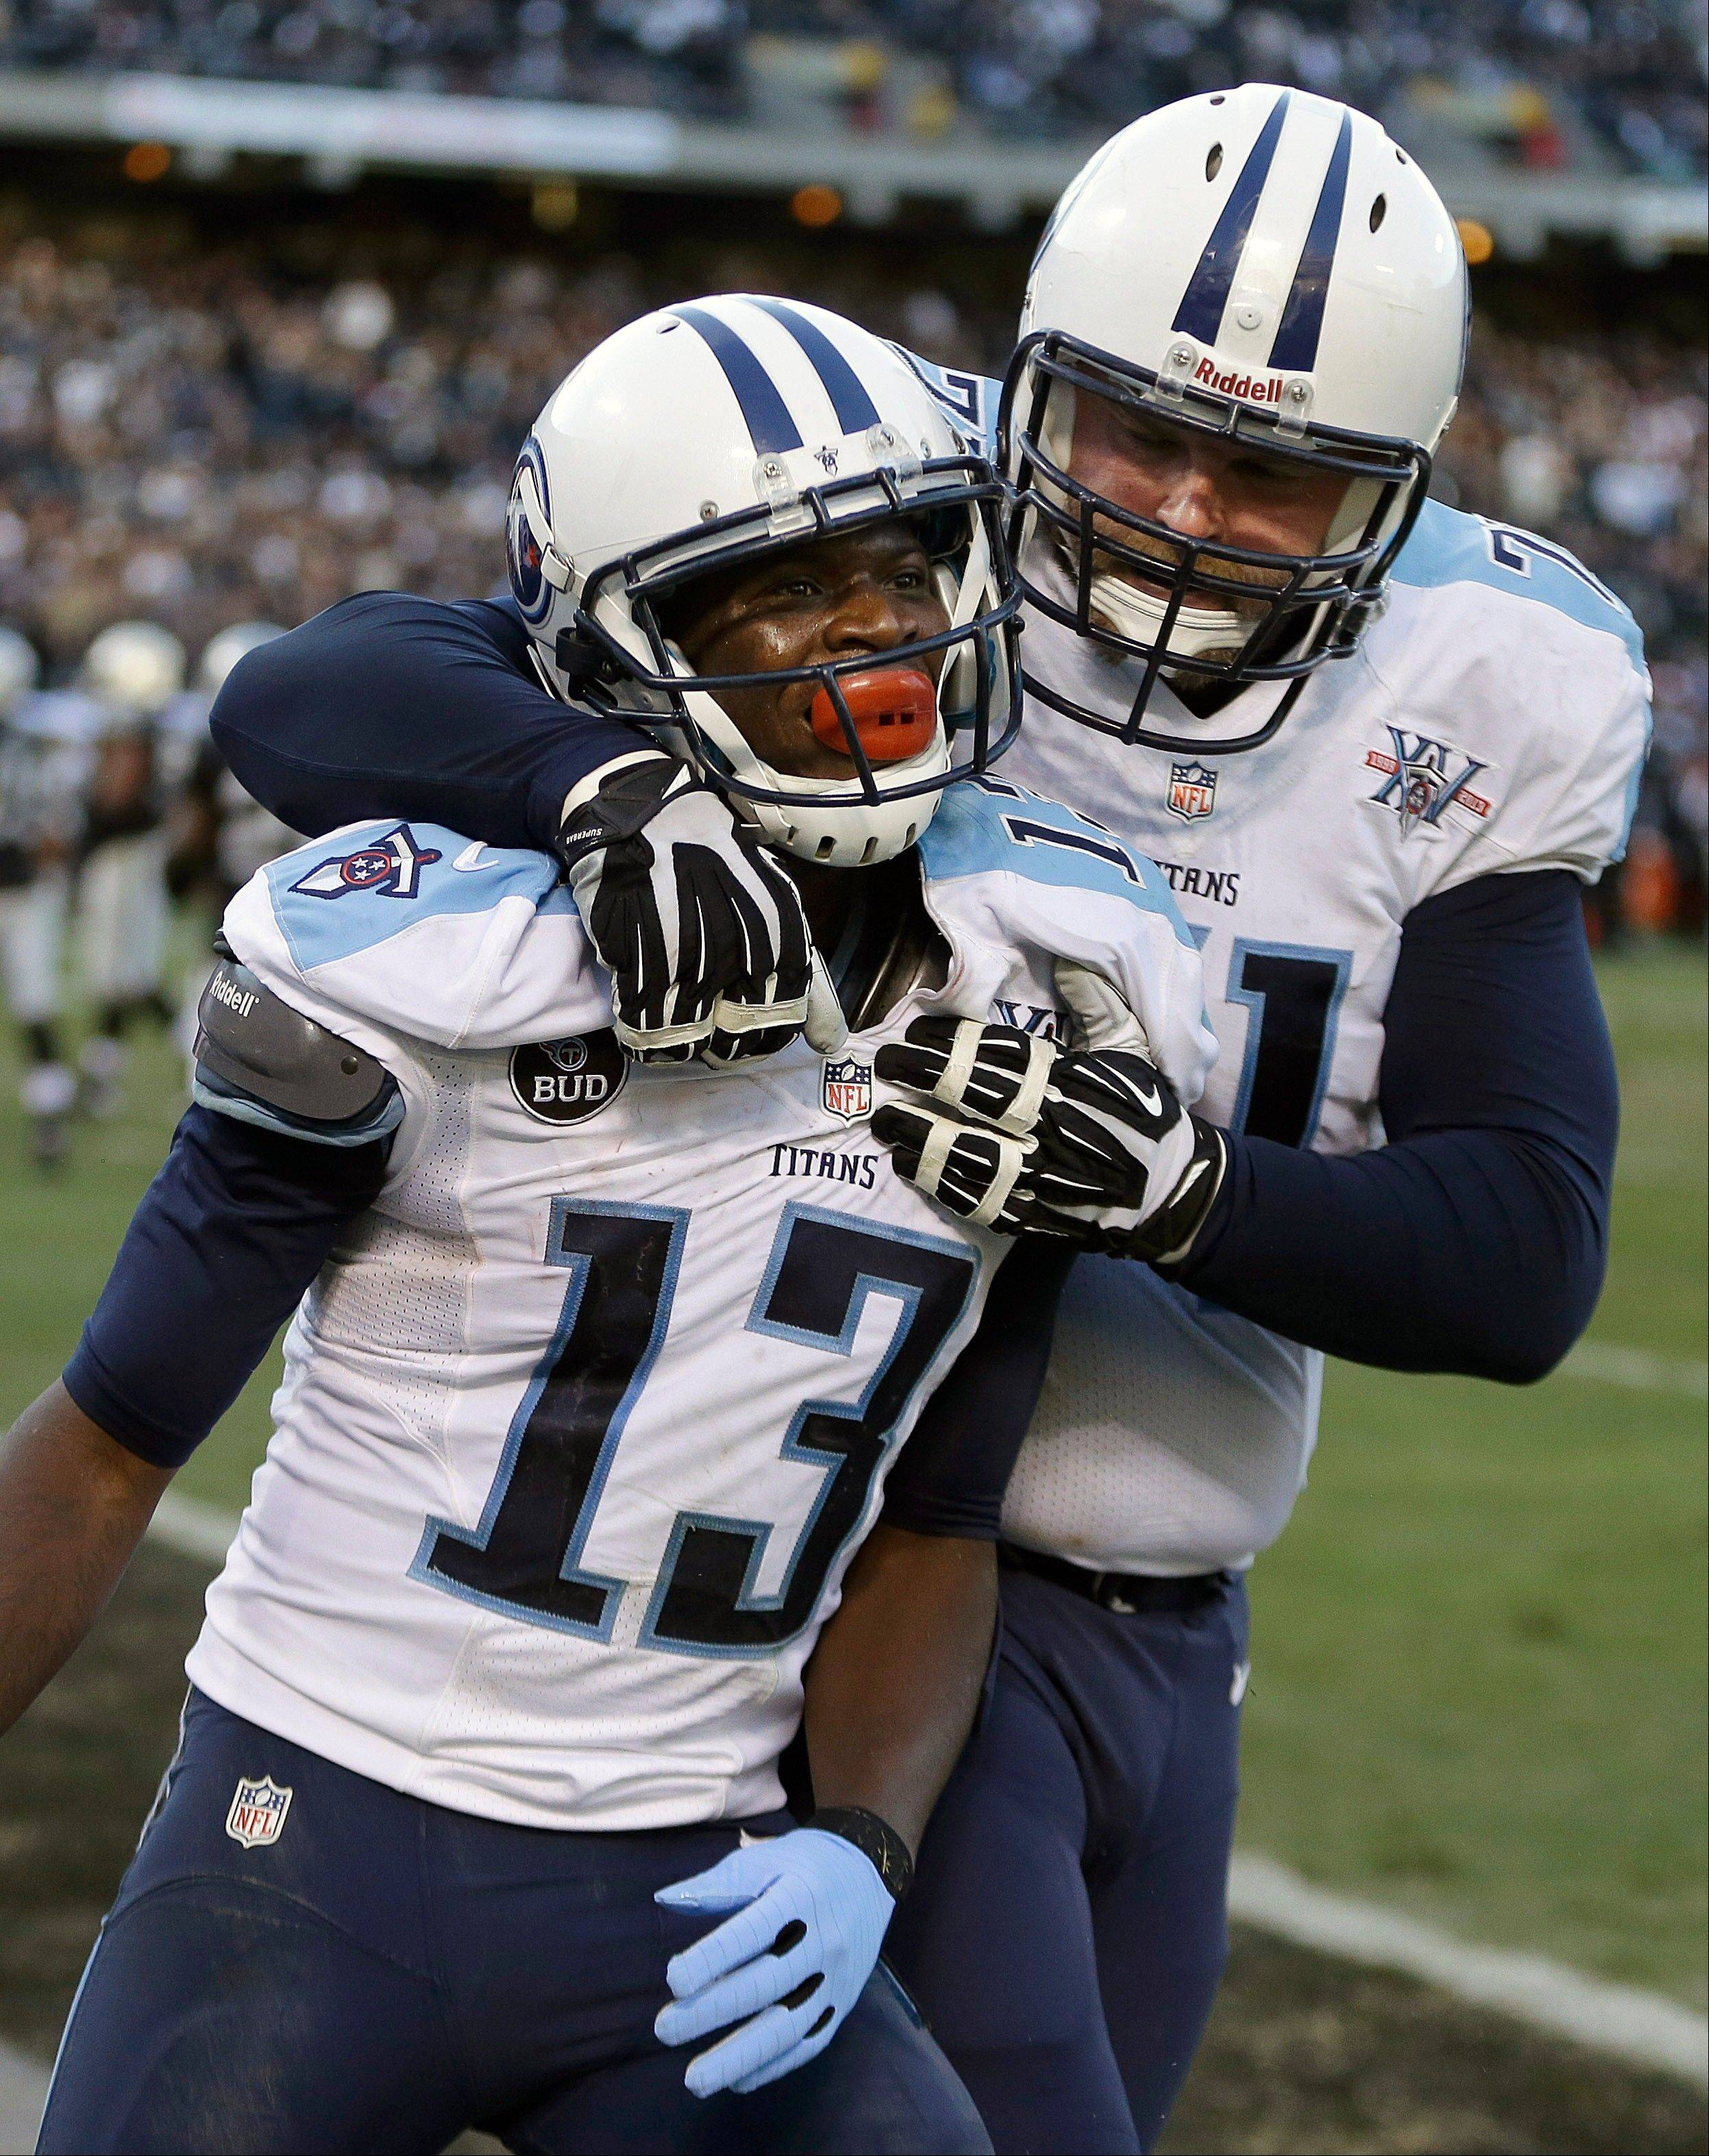 Tennessee Titans wide receiver Kendall Wright (13) celebrates with tackle Michael Roos after scoring on a 10-yard touchdown pass against the Oakland Raiders during the fourth quarter of an NFL football game in Oakland, Calif., Sunday, Nov. 24, 2013. The Titans won 23-19.